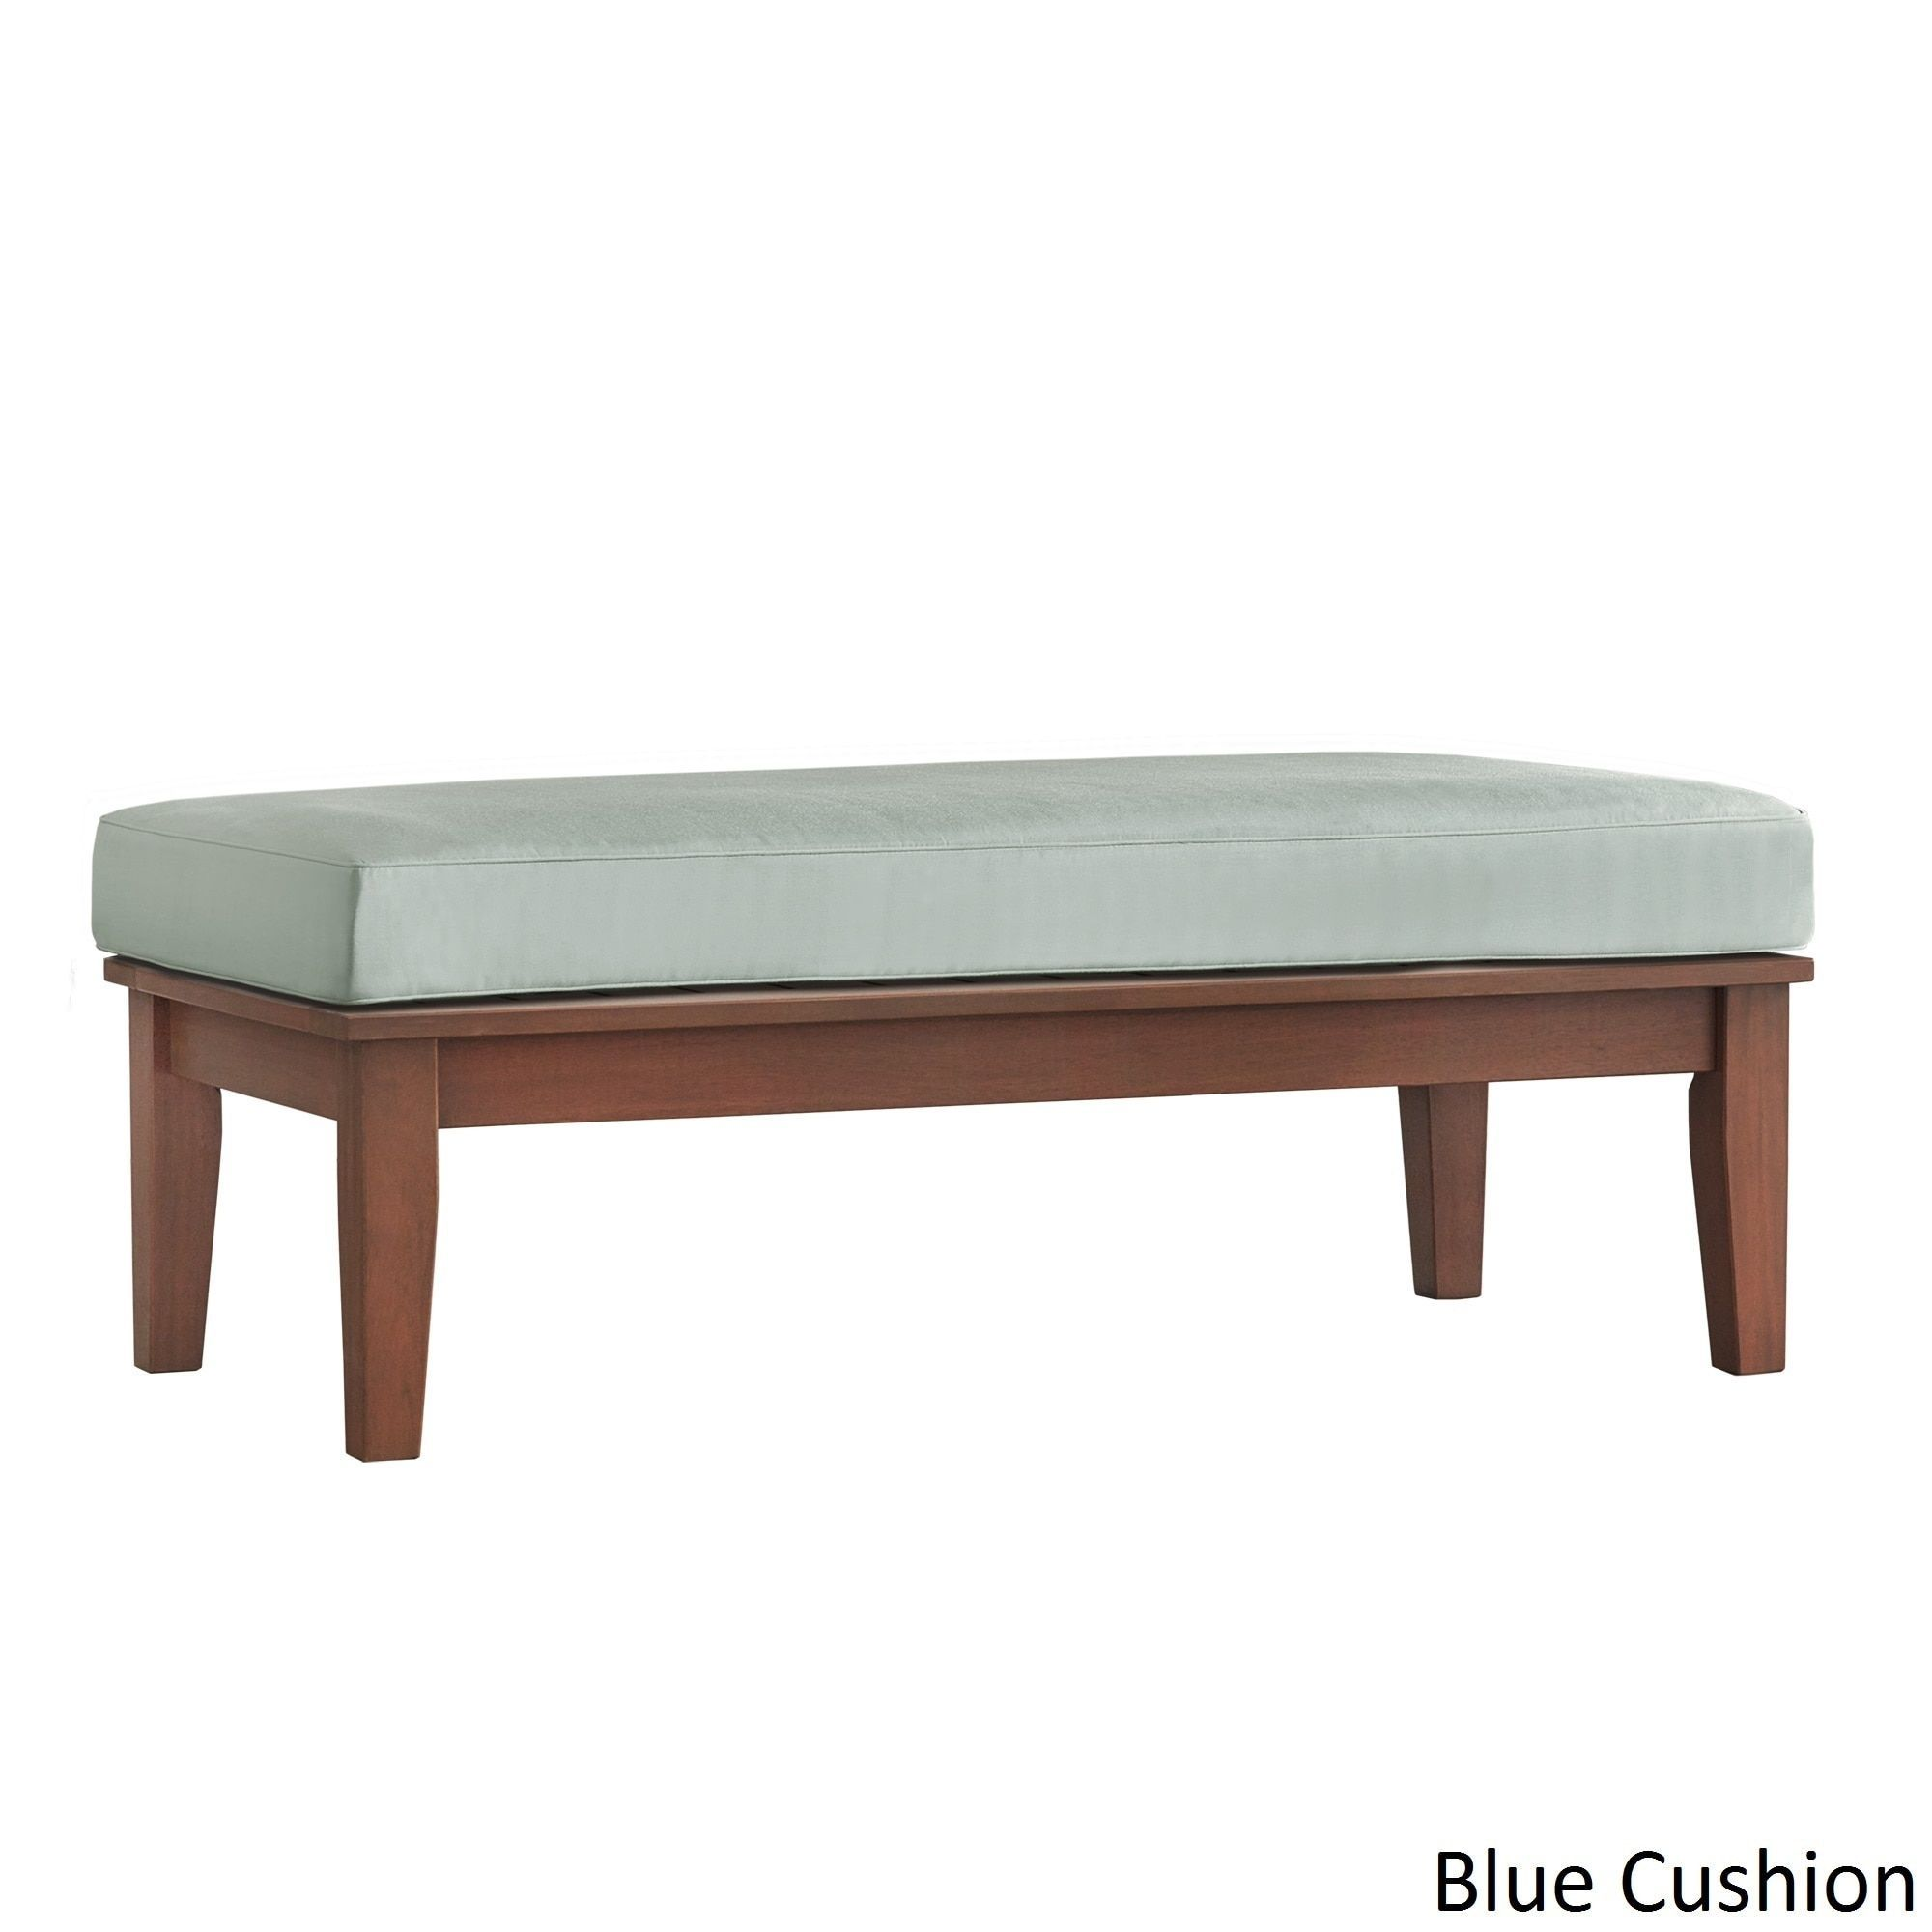 Yasawa Wood Brown Patio Cushioned Rectangular Coffee Table Ottoman iNSPIRE Q  Oasis (Blue cushion)